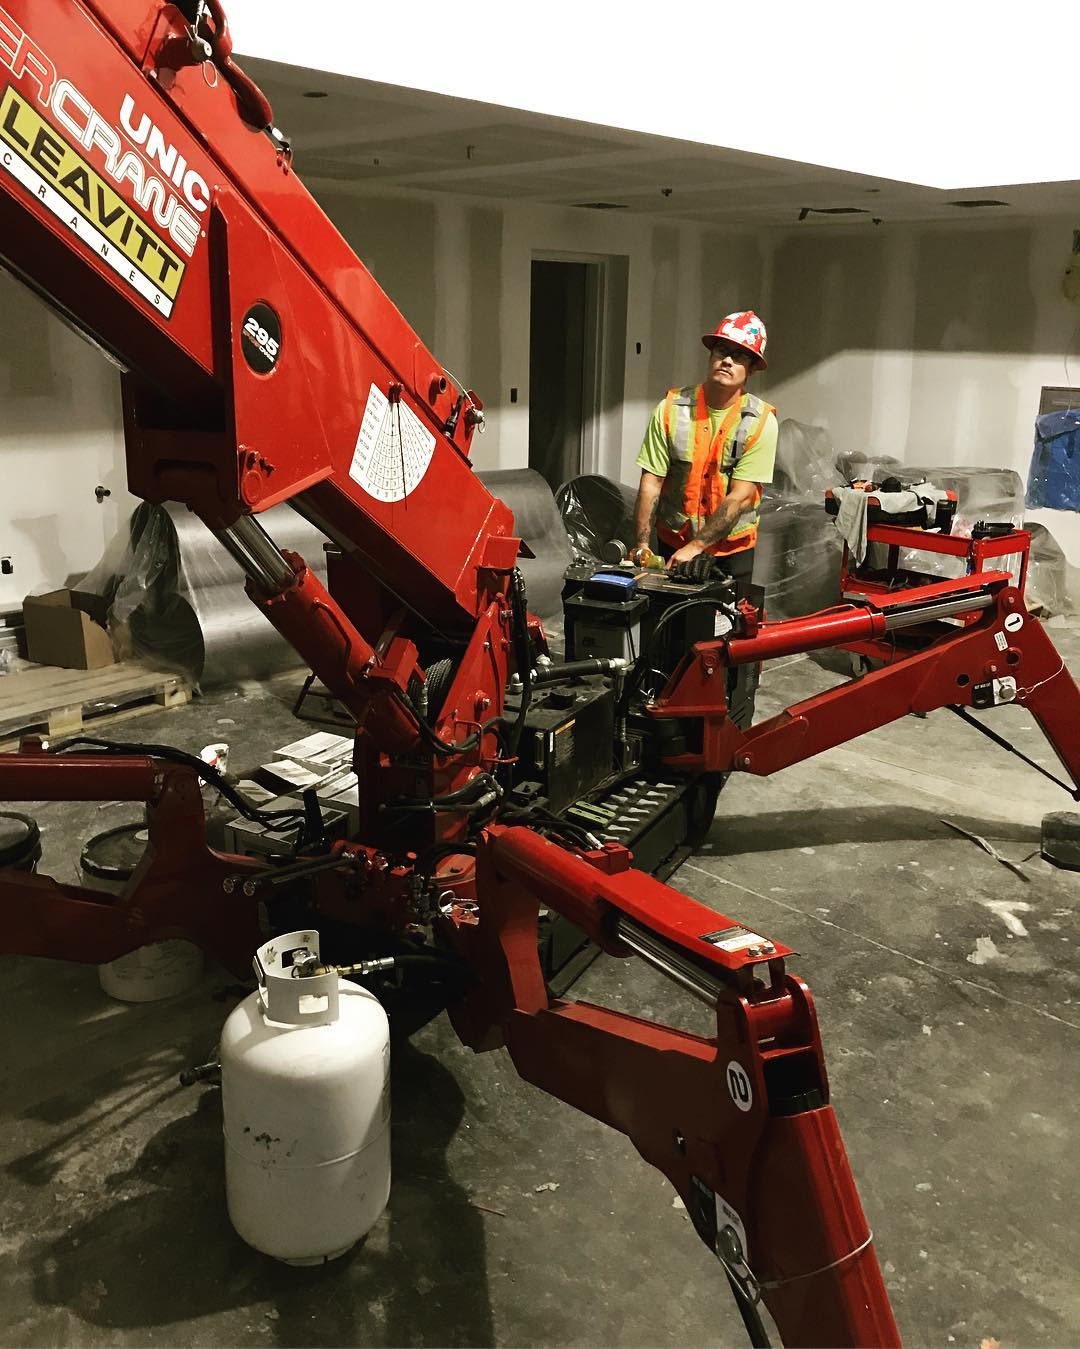 Spydercrane mini-crane being use by one of our Gilmar Crane Service employees. Good for indoor or outdoor confined areas.